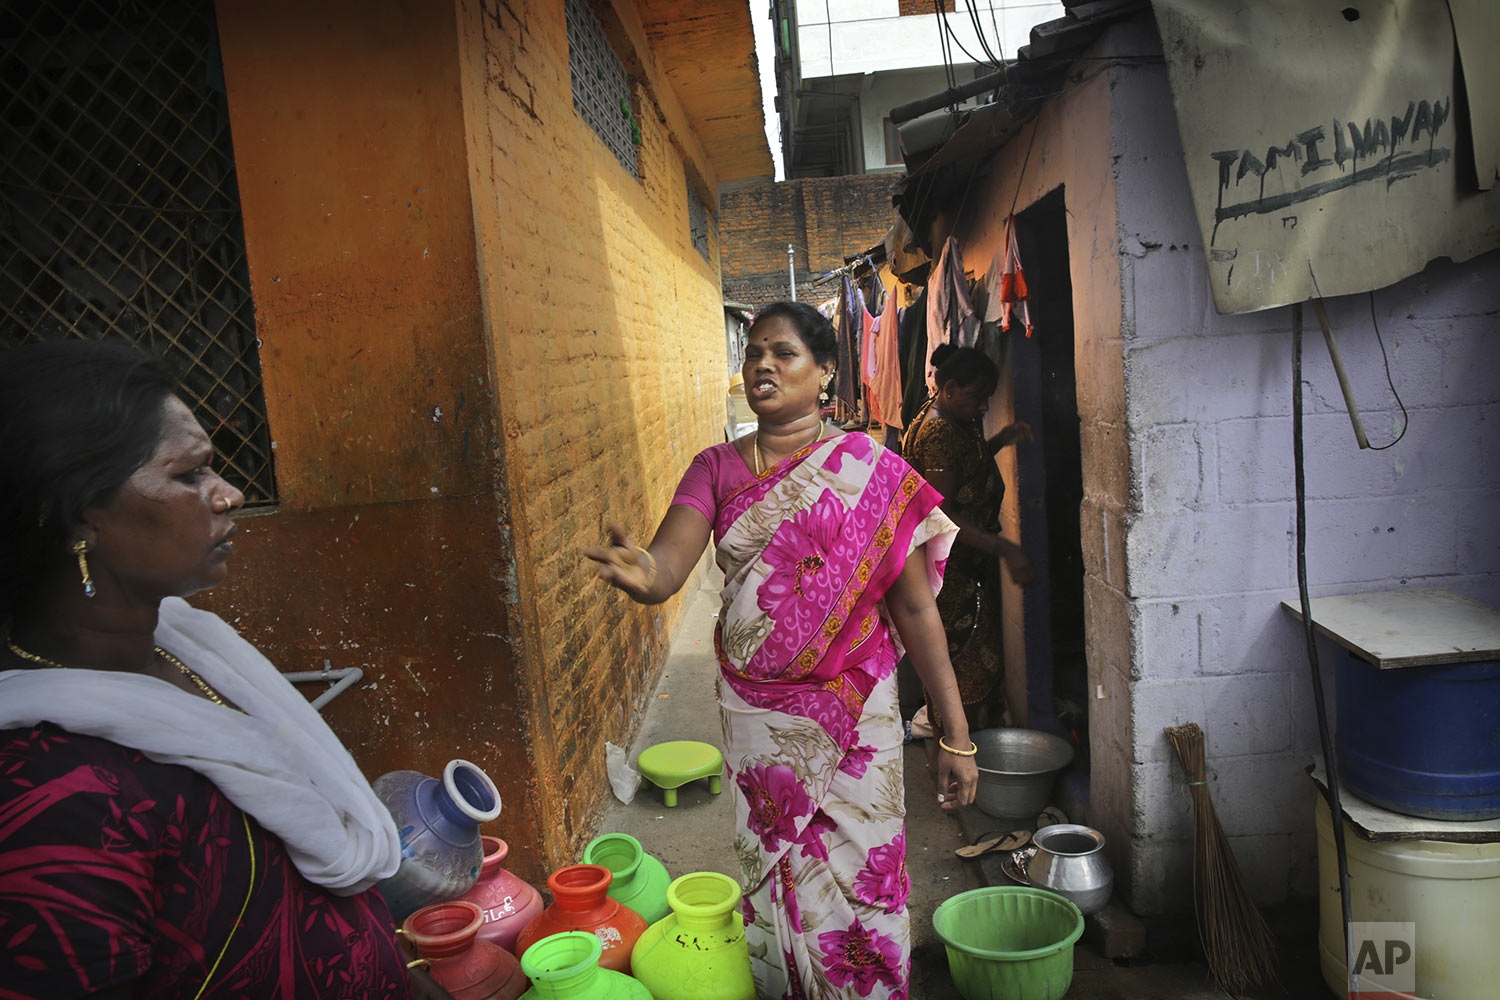 K.Devi, center, talks to her neighbor as they wait for water truck to arrive in their shanty town in Chennai in Southern Indian state of Tamil Nadu, Thursday, July 18, 2019. (AP Photo/Manish Swarup)